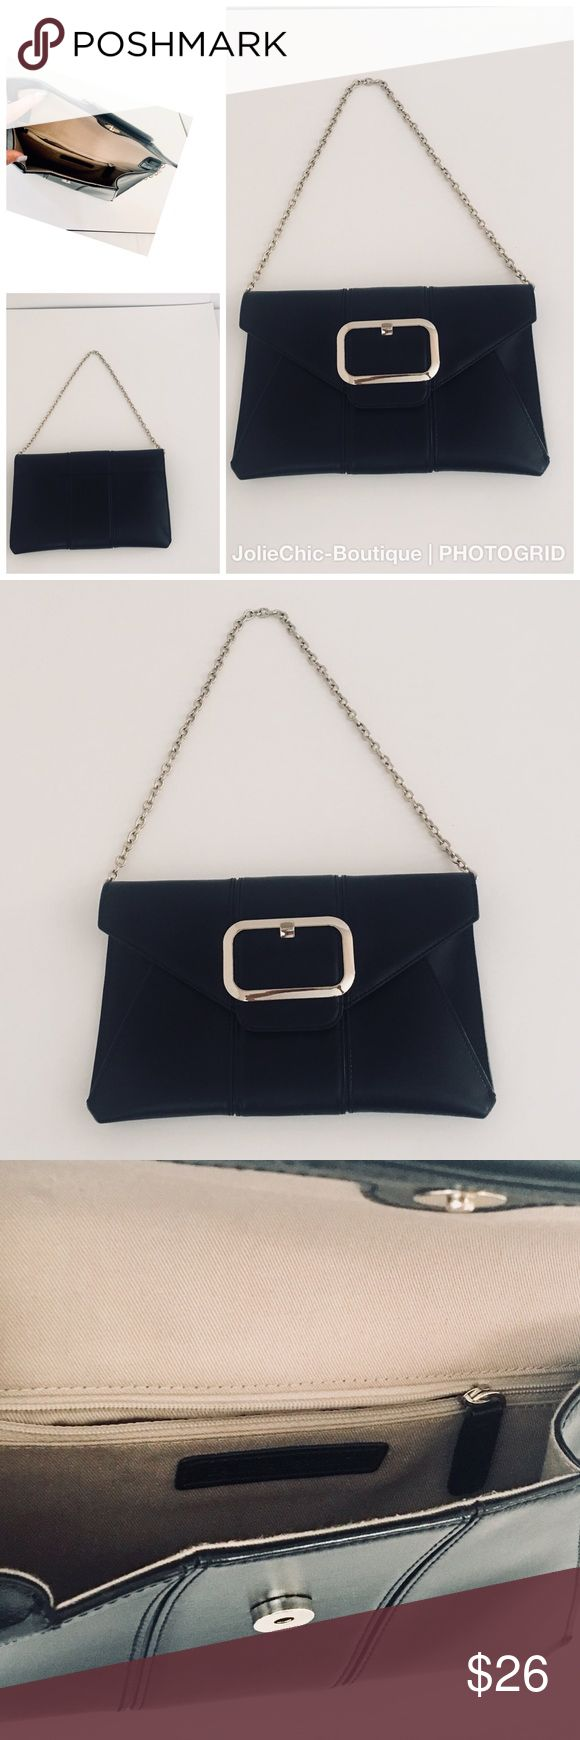 Banana Republic Leather Purse Versatile Banana Republic purse which can be worn as a Clutch, or use the chain strap to use as shoulder bag. Banana Republic Bags Shoulder Bags